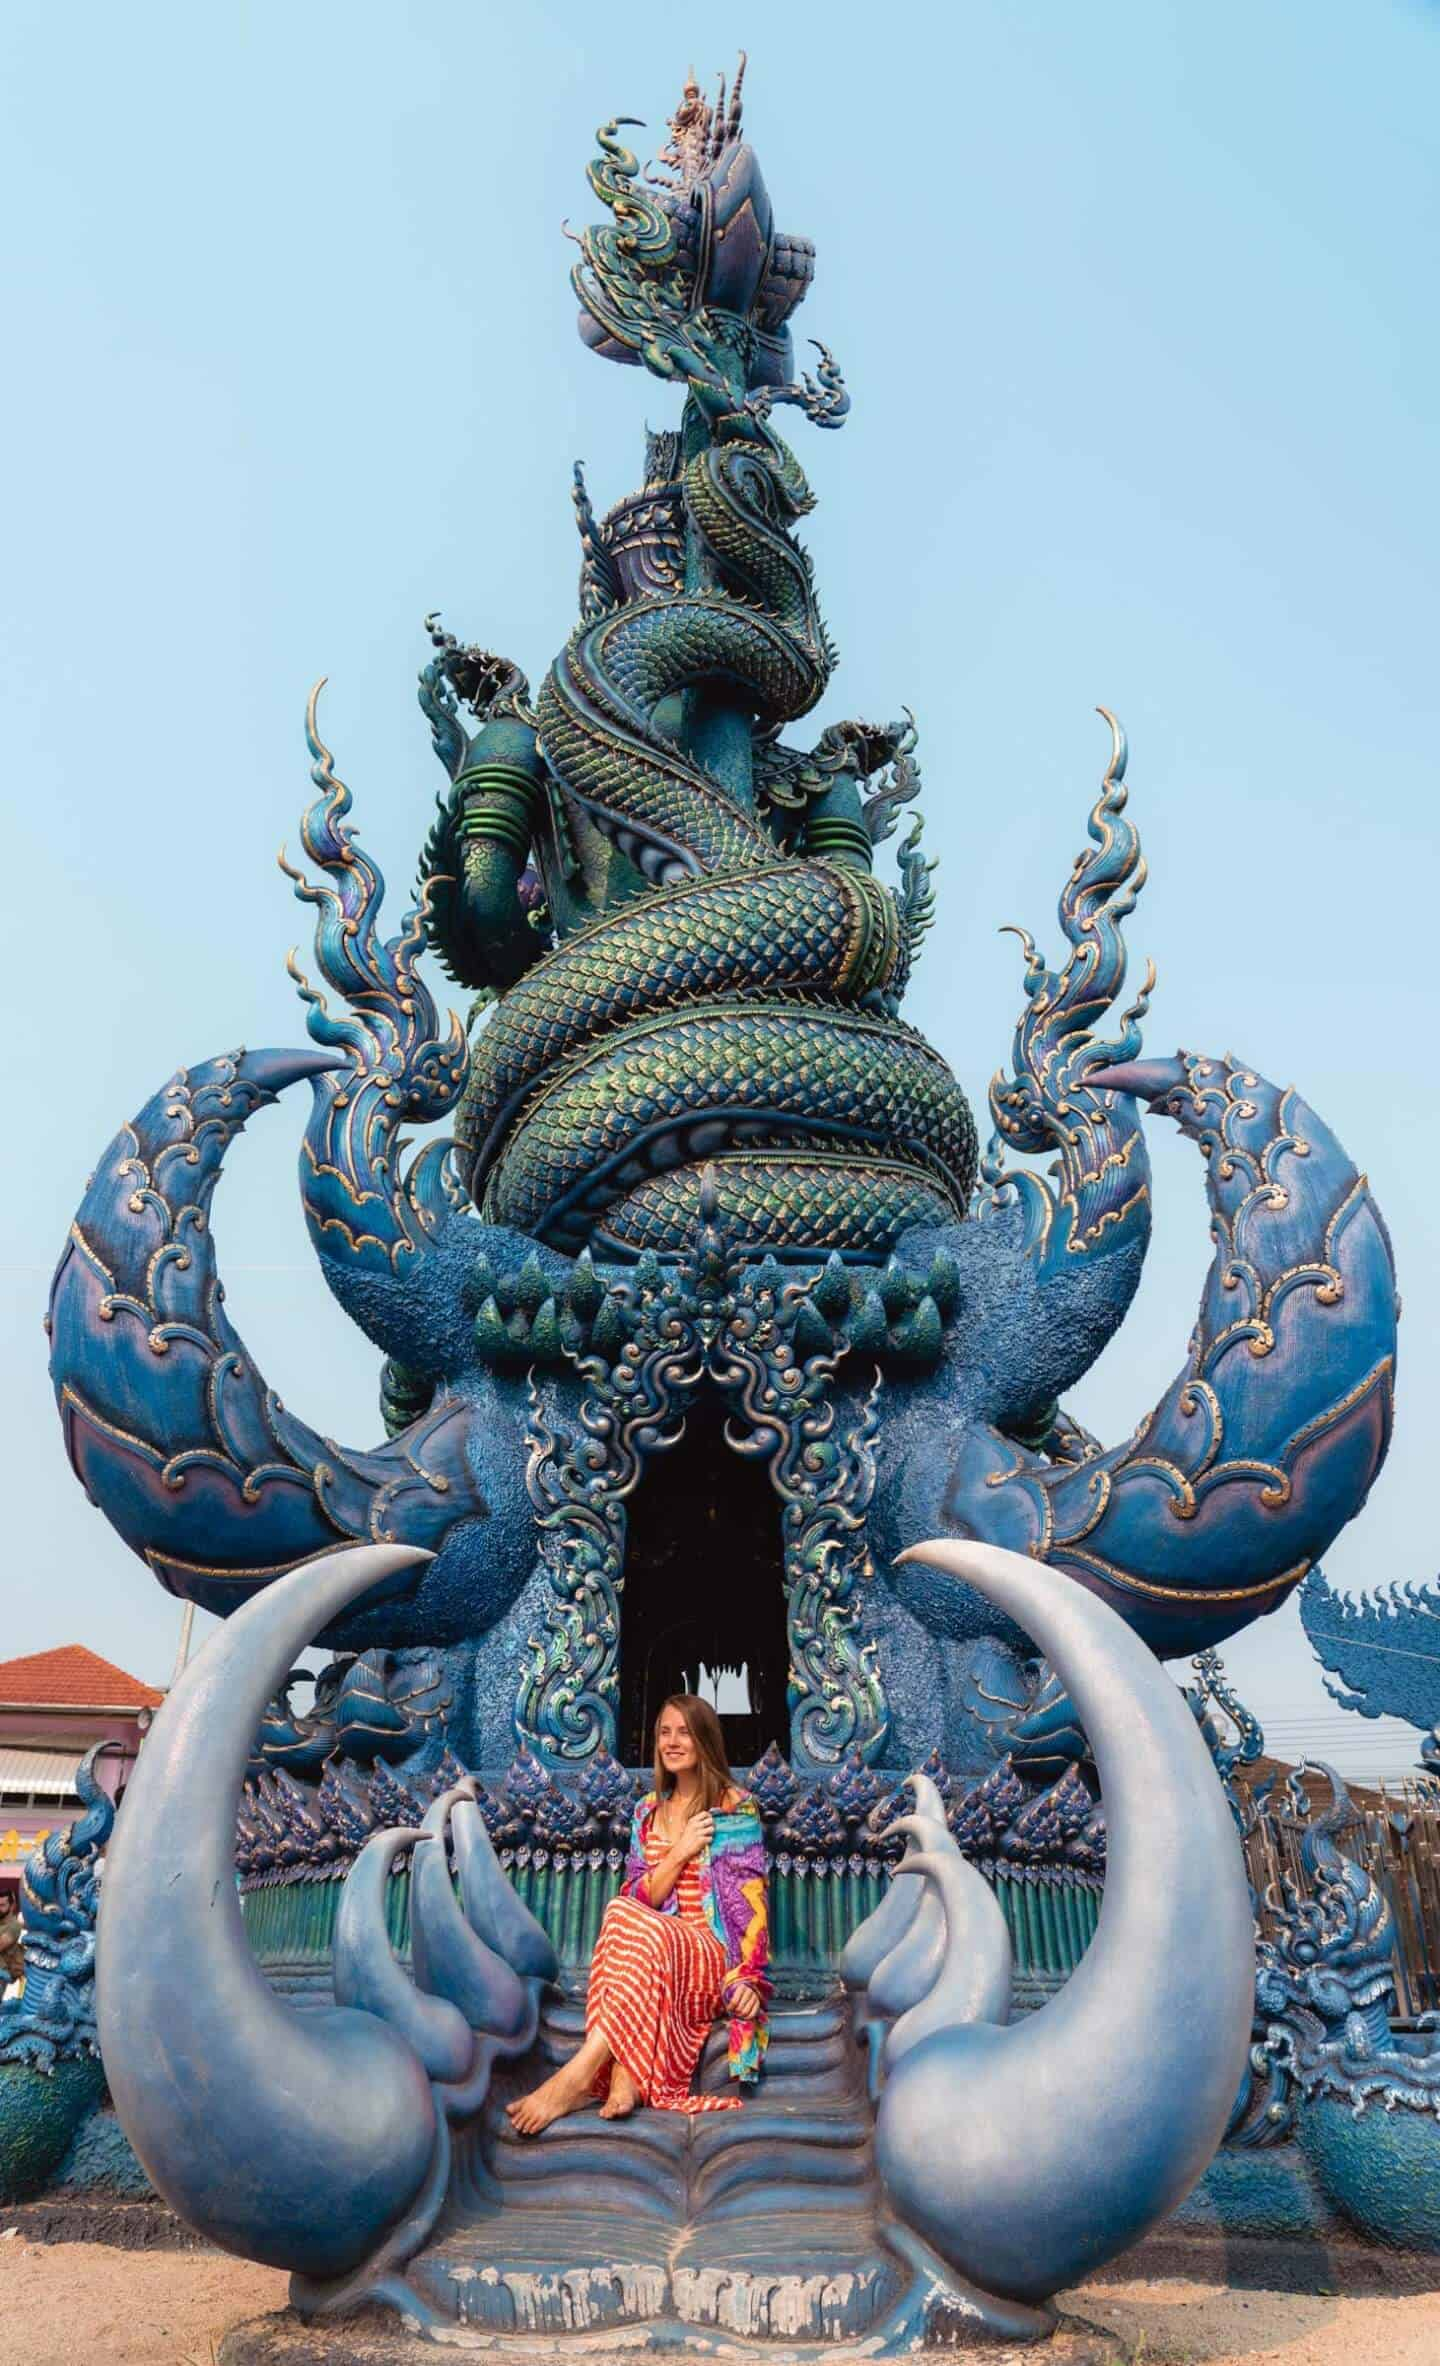 An interesting side temple at the Blue Temple in Chiang Rai.